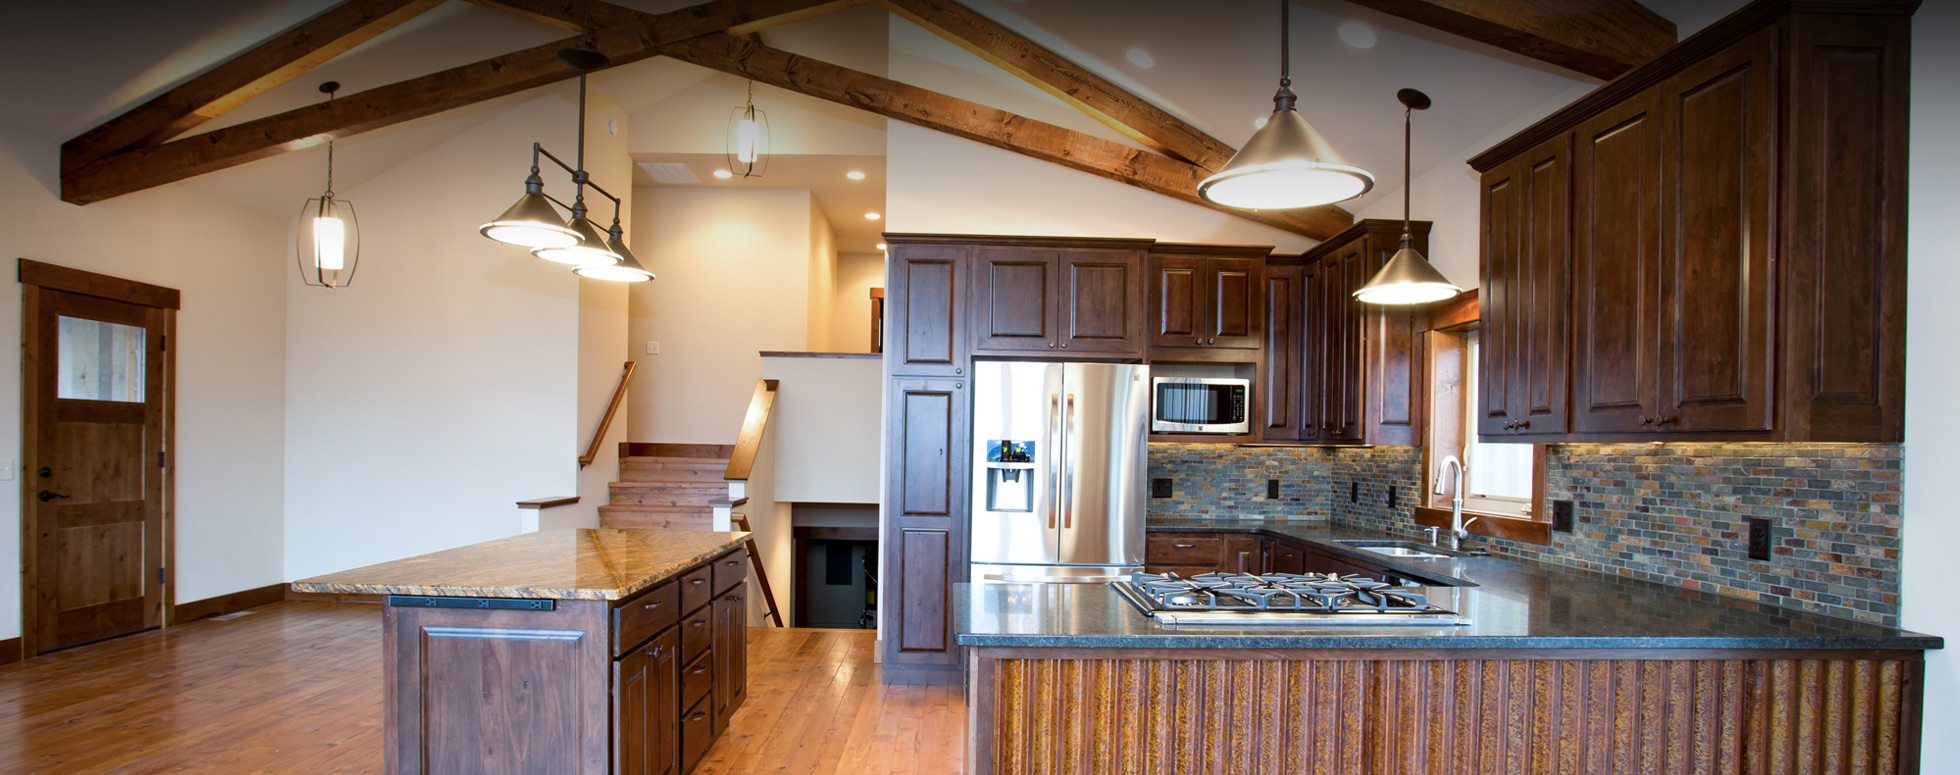 Rustic Wood Kitchen Countertops